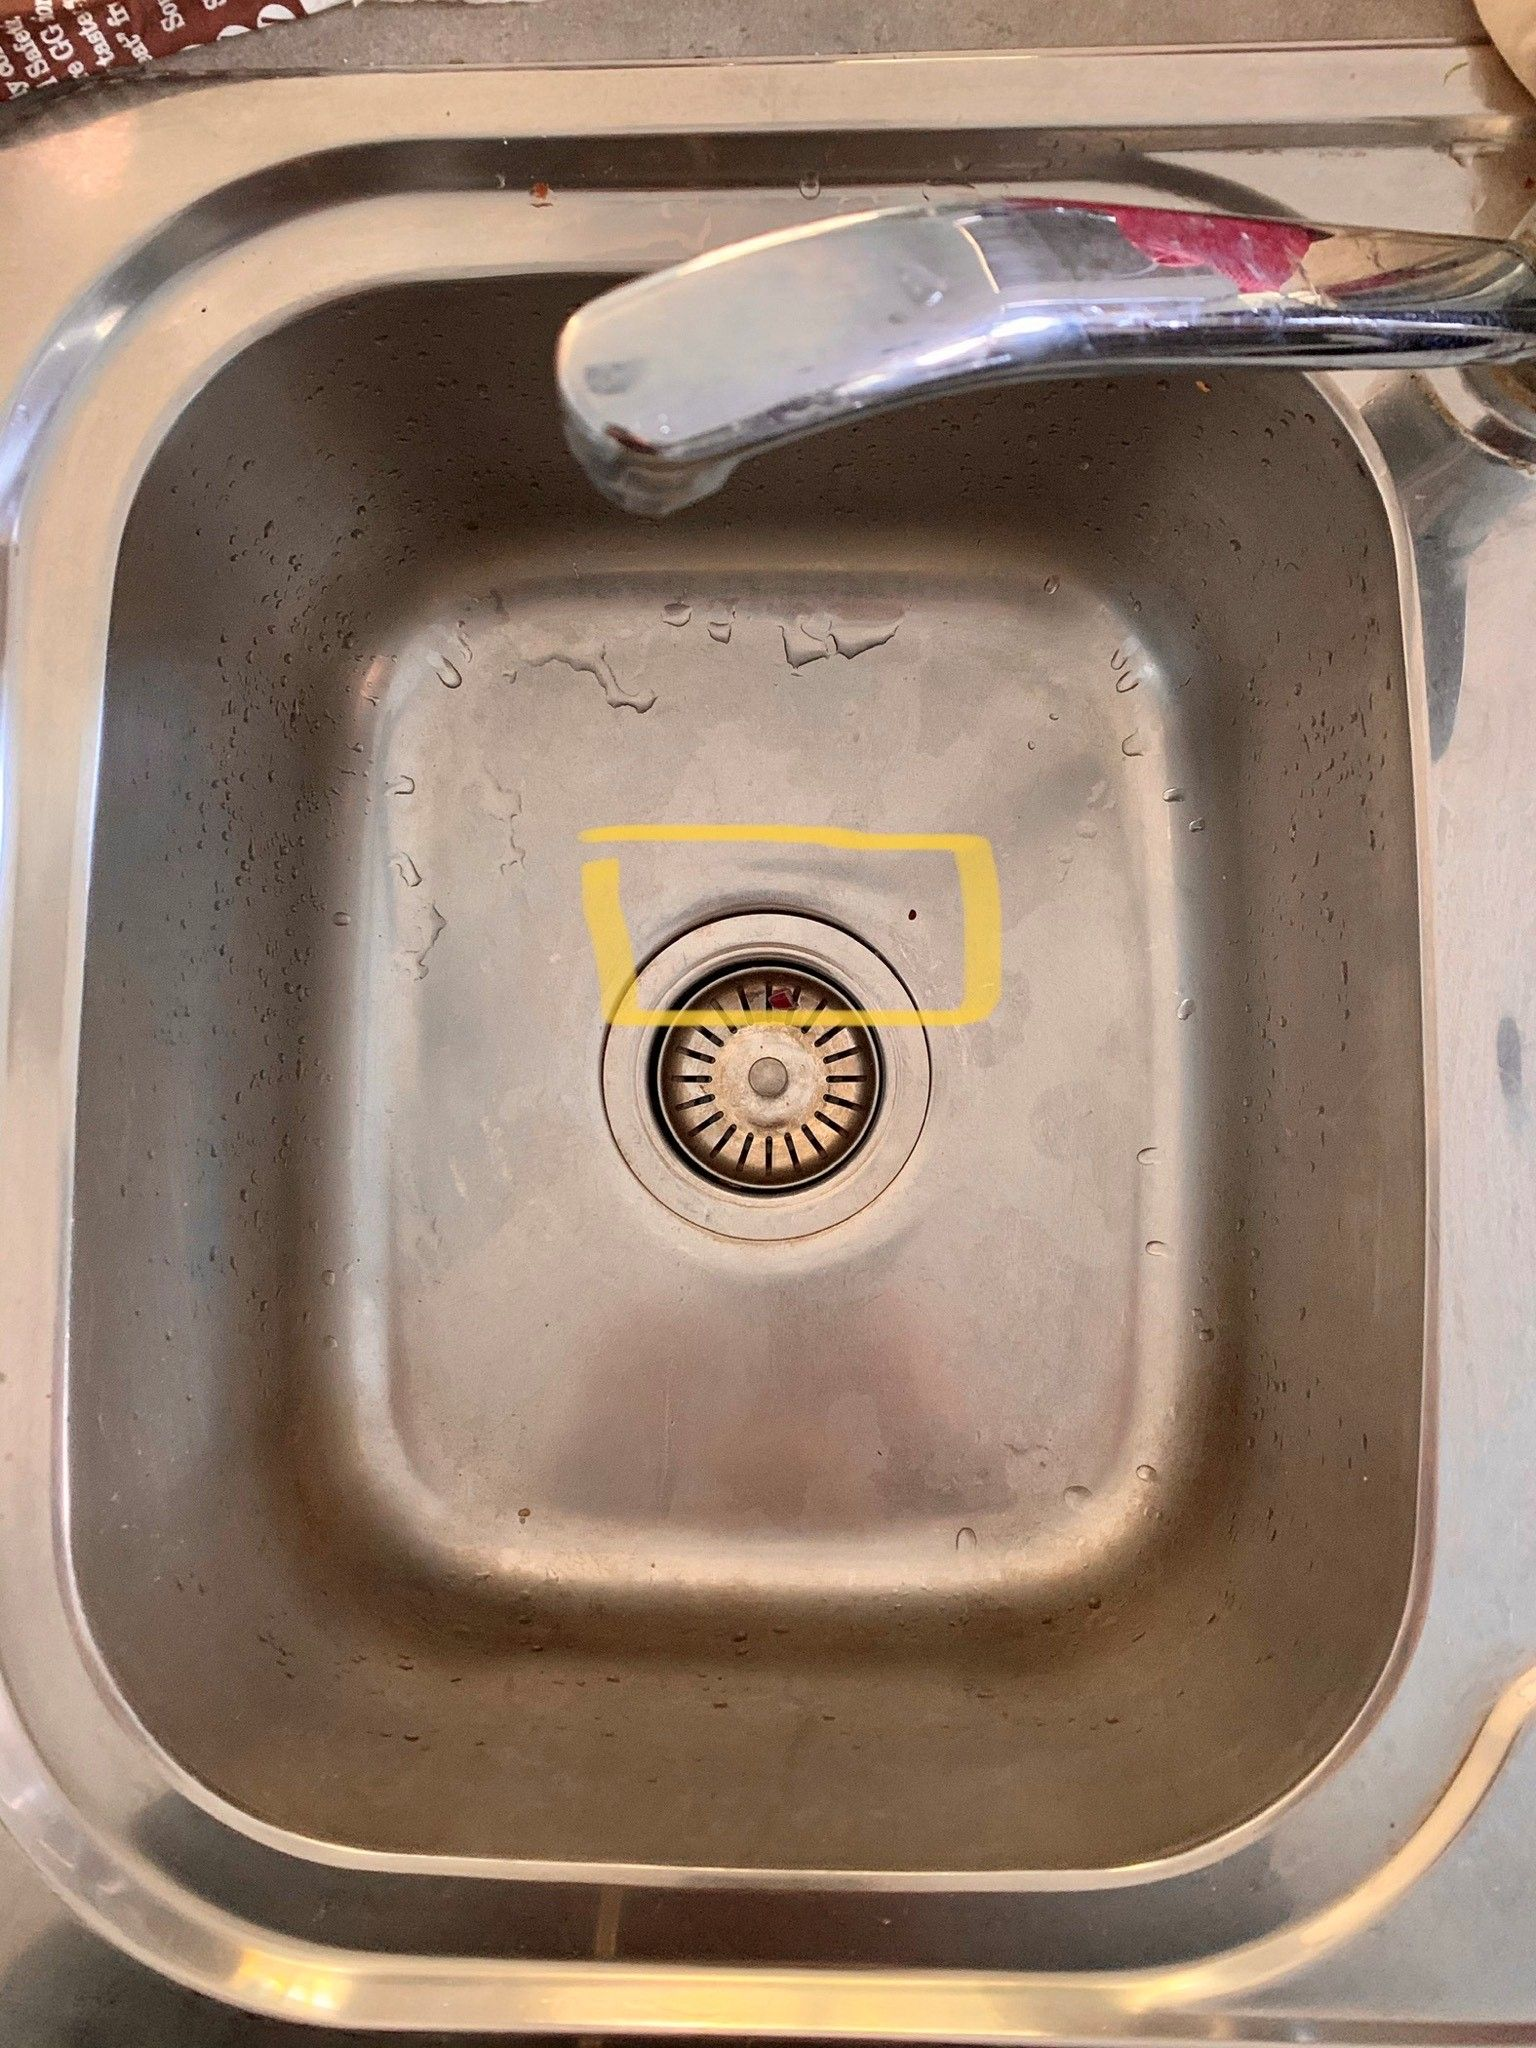 Kitchen sink drain leak | Bunnings Workshop Community